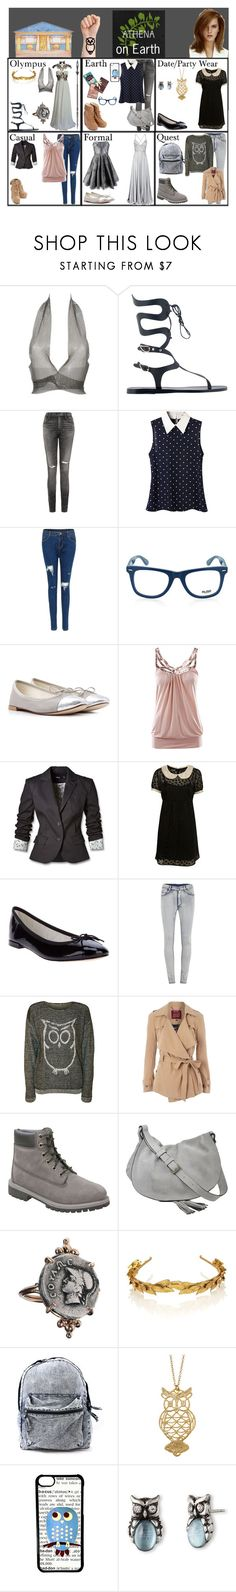 """Athena on Earth. (Emma Watson as Athena)"" by elmoakepoke ❤ liked on Polyvore featuring Emma Watson, Zuhair Murad, Fannie Schiavoni, Ancient Greek Sandals, Citizens of Humanity, GlassesUSA, Repetto, H&M, Mexx and Miss Selfridge"